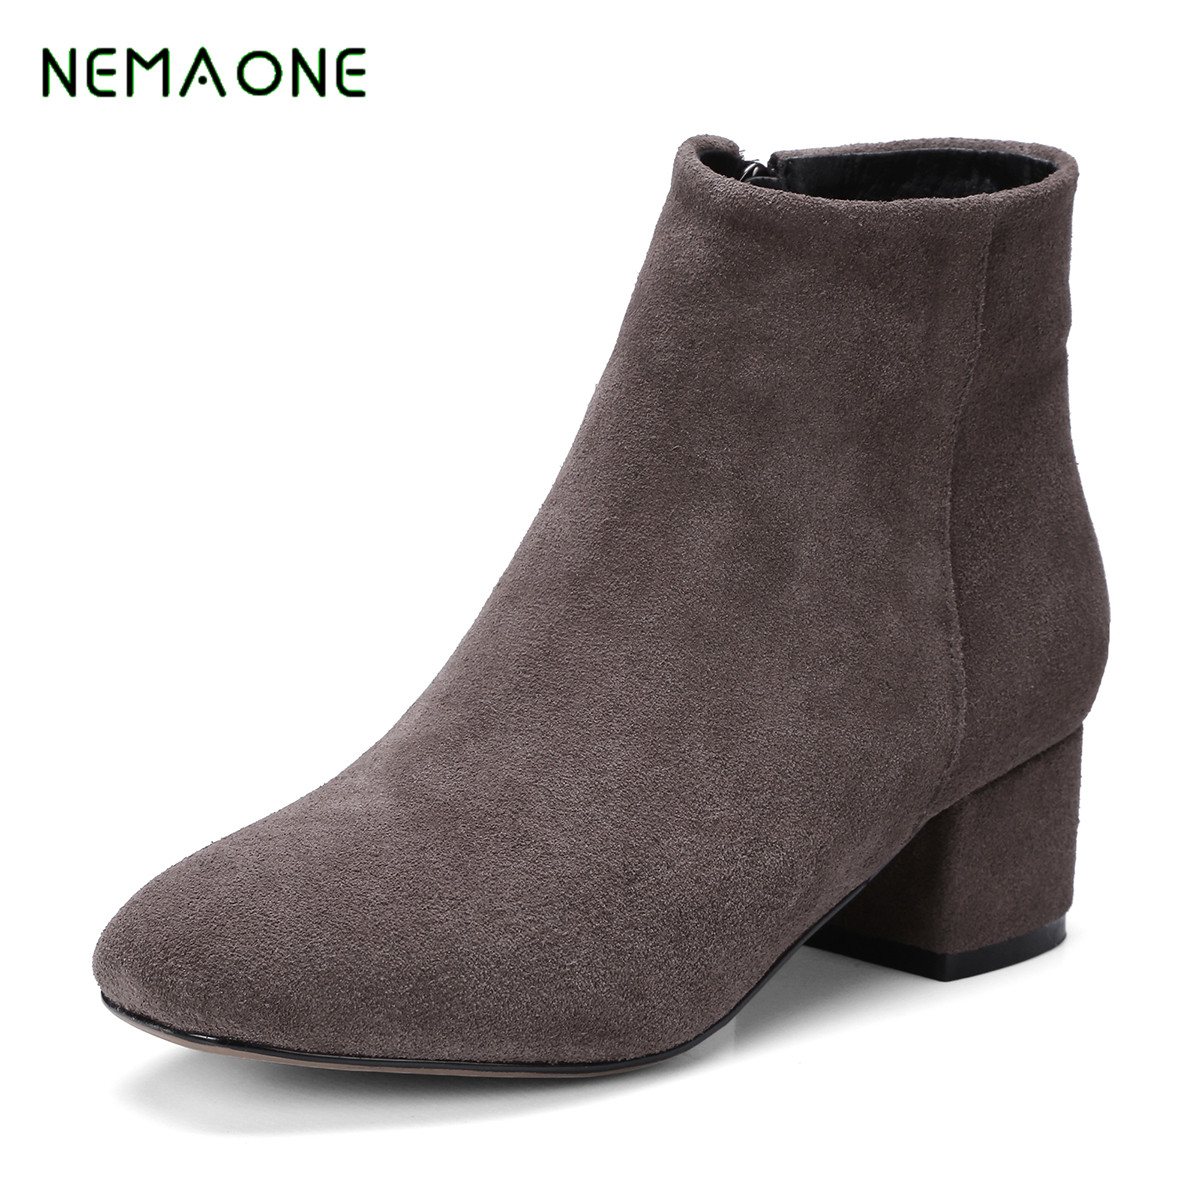 NEMAONE 2019 Genuine Leather Women Boots Flat Heel Vintage Handmade Women Shoes Ankle Boots 7 colors genuine leather women ankle boots vintage soft outsole shoes handmade full grain leather boots for women flat shoes